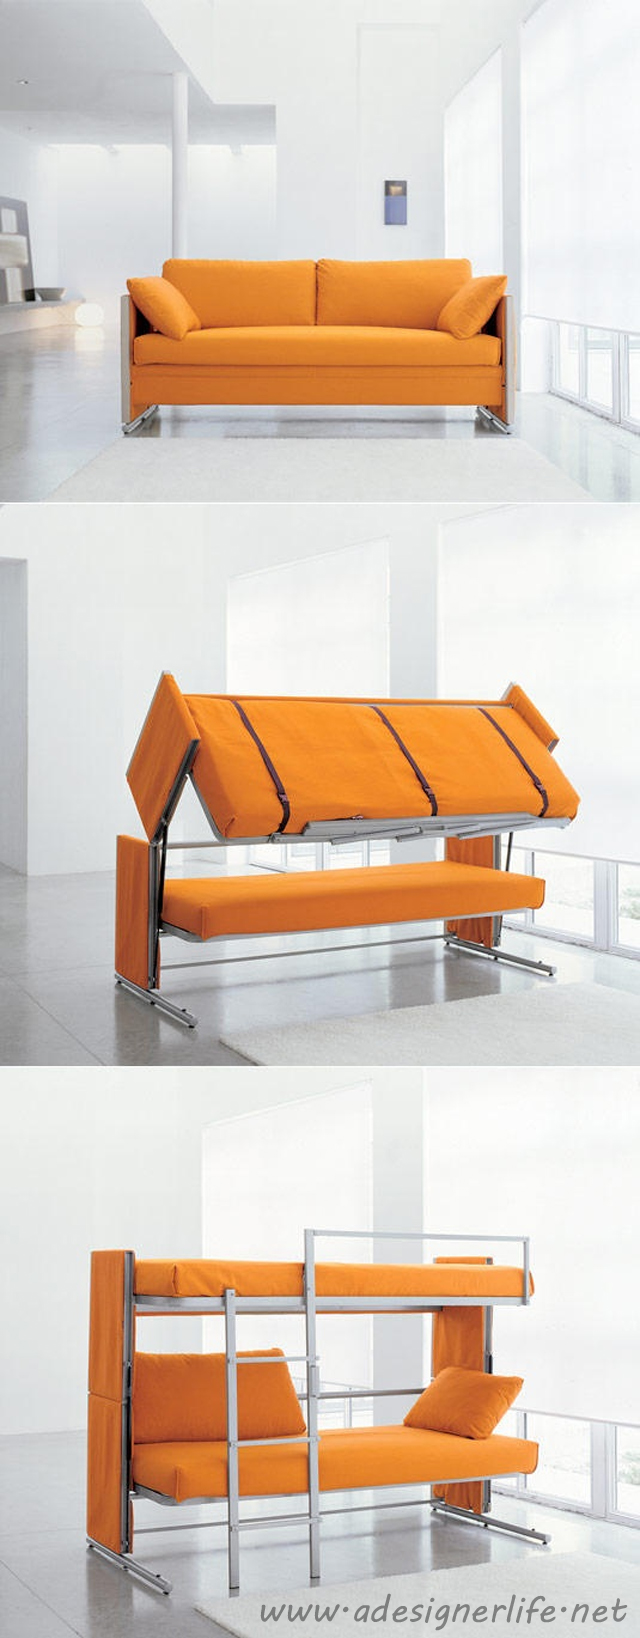 Resource Furniture Convertible Sofa To Bunk Bed AWESOME Product